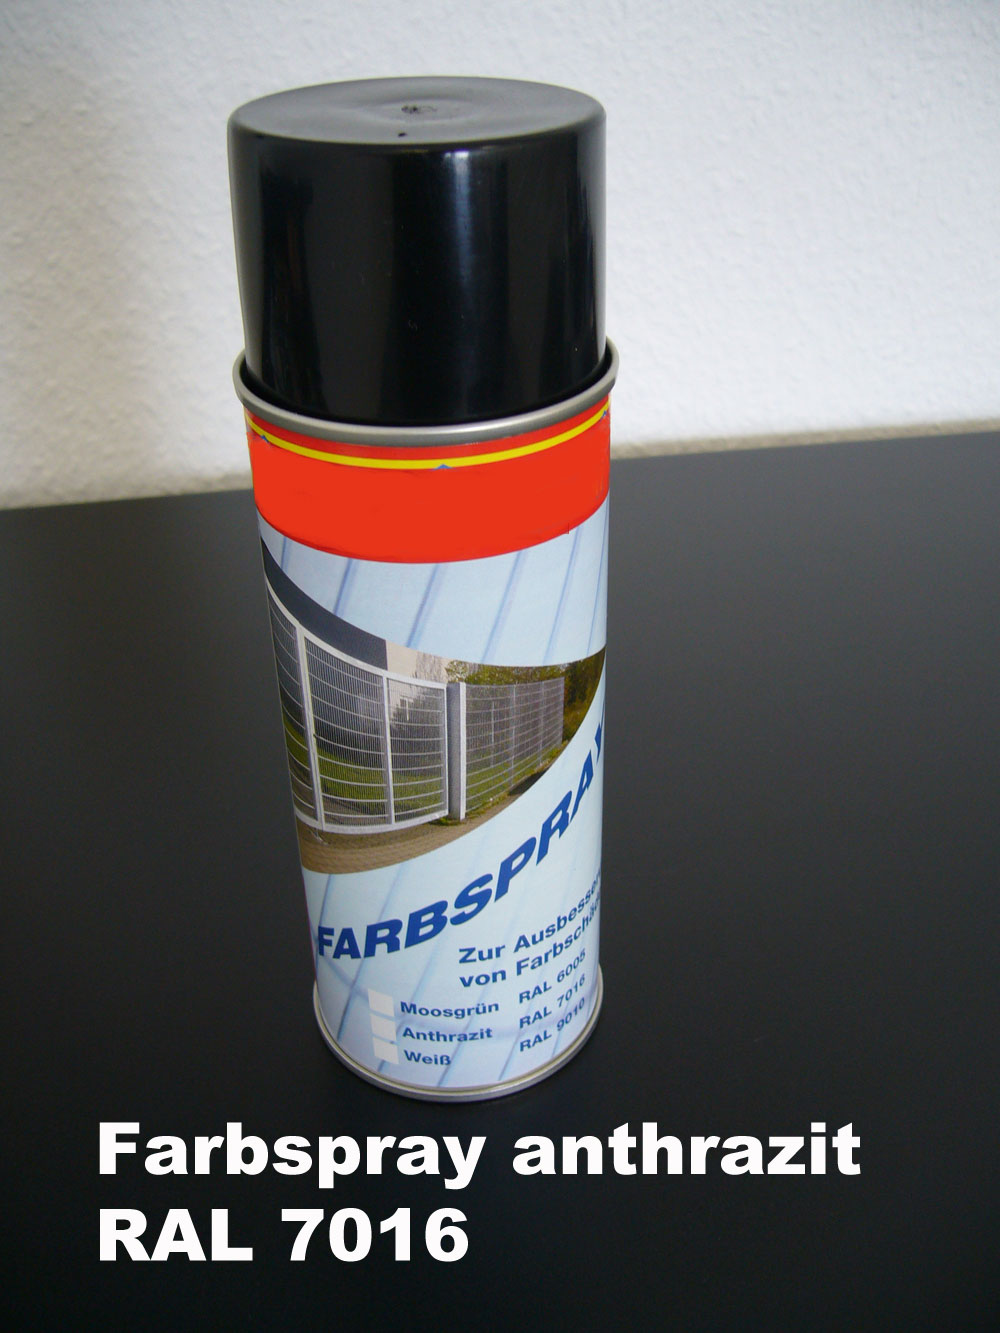 farbspray 400ml speziallack ral 7016 anthrazit ebay. Black Bedroom Furniture Sets. Home Design Ideas